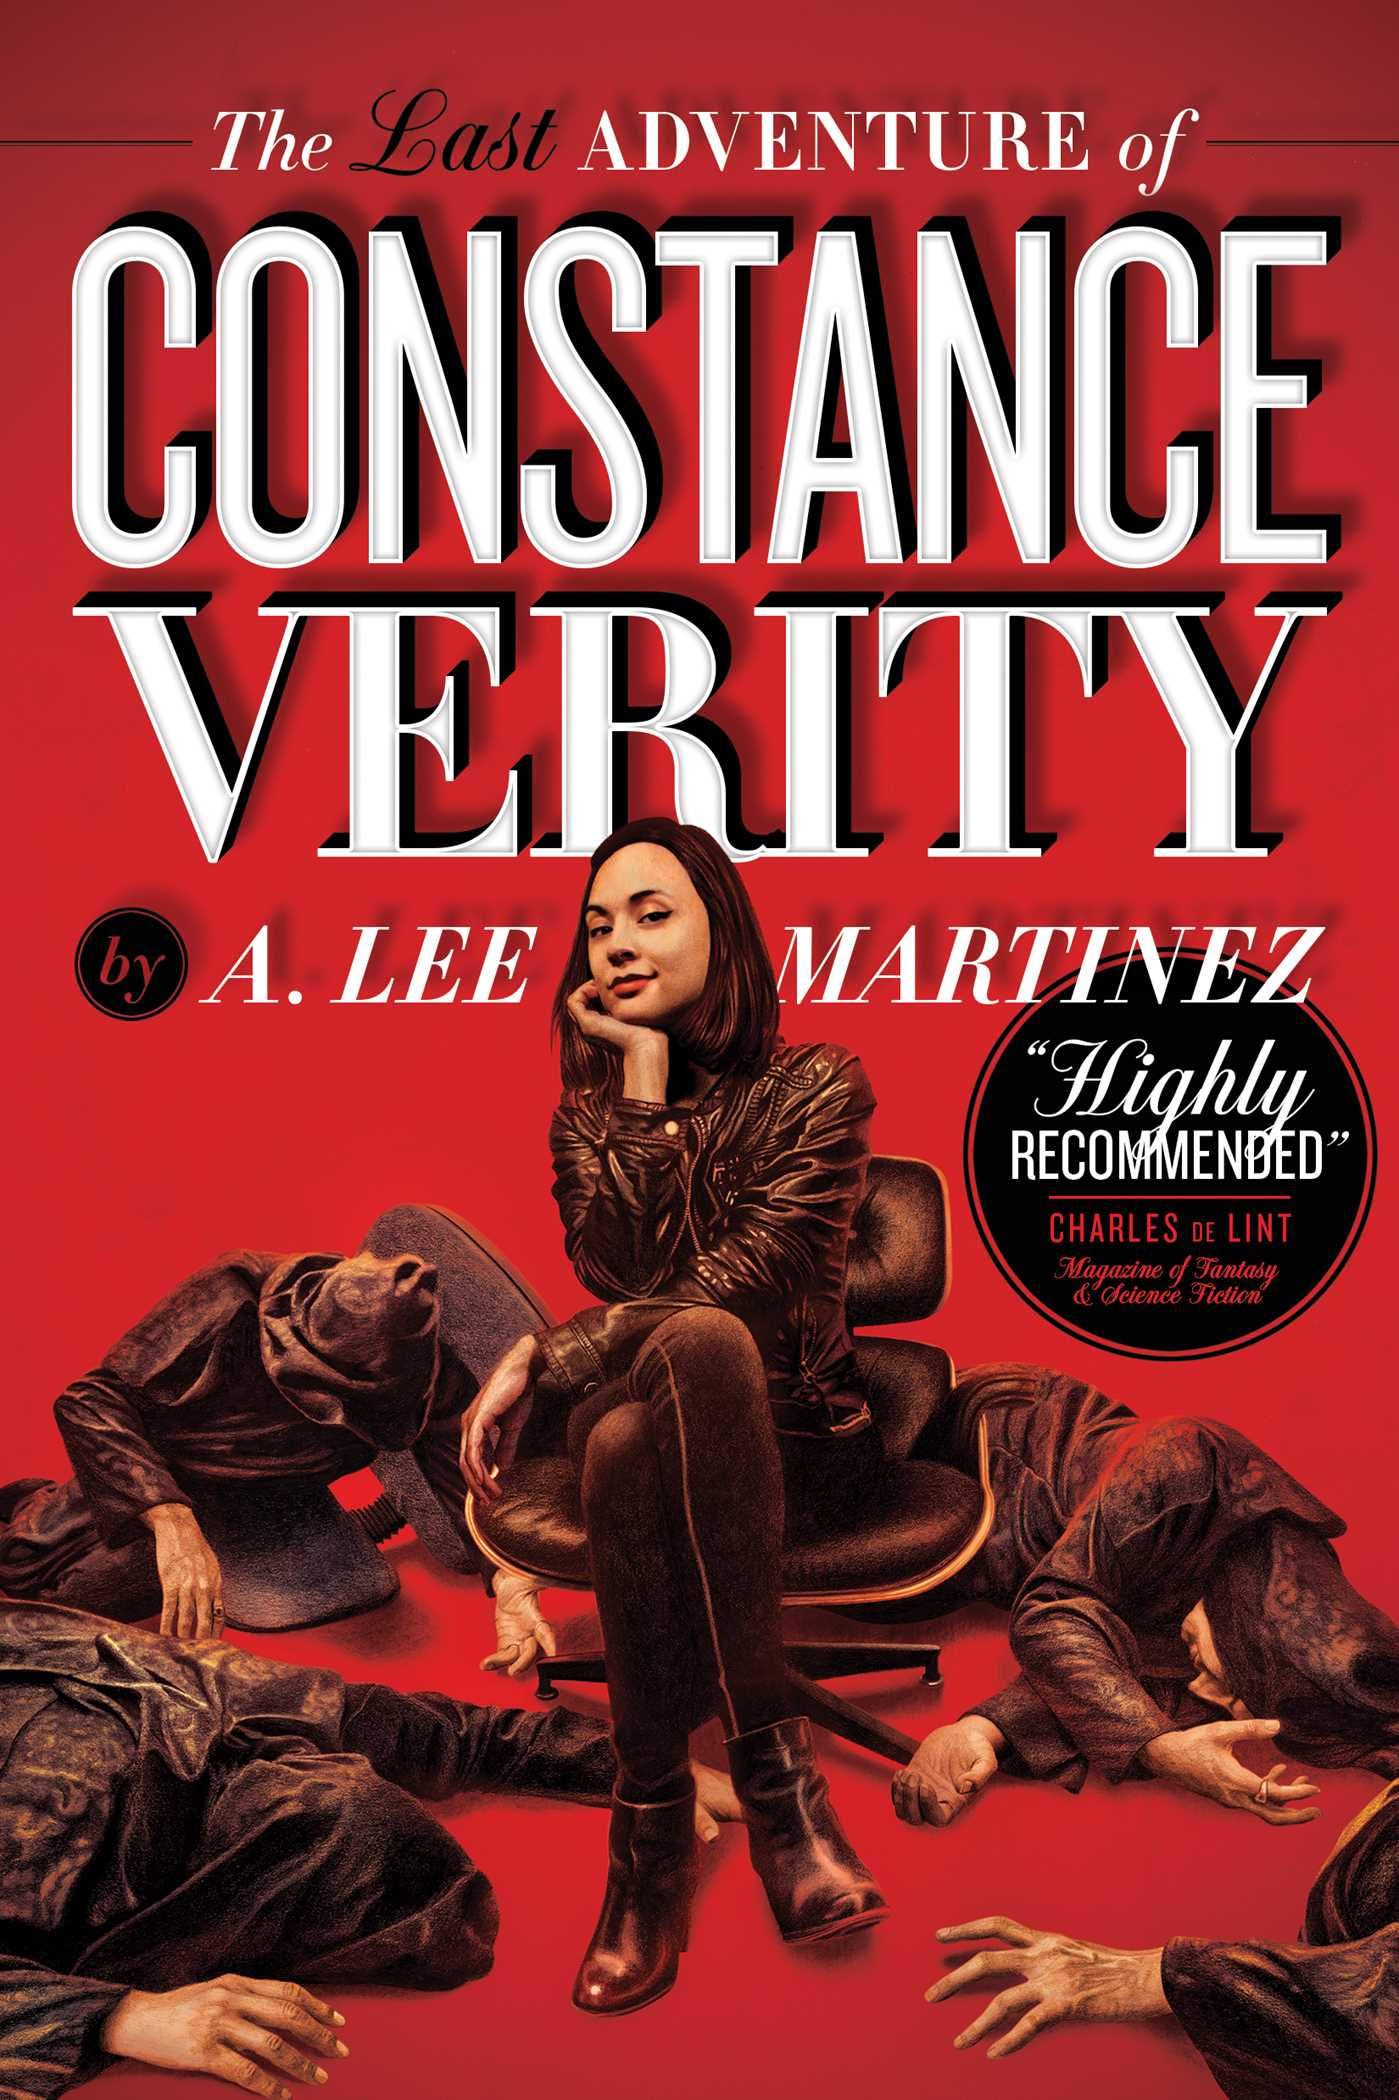 The last adventure of constance verity 9781481443531 hr